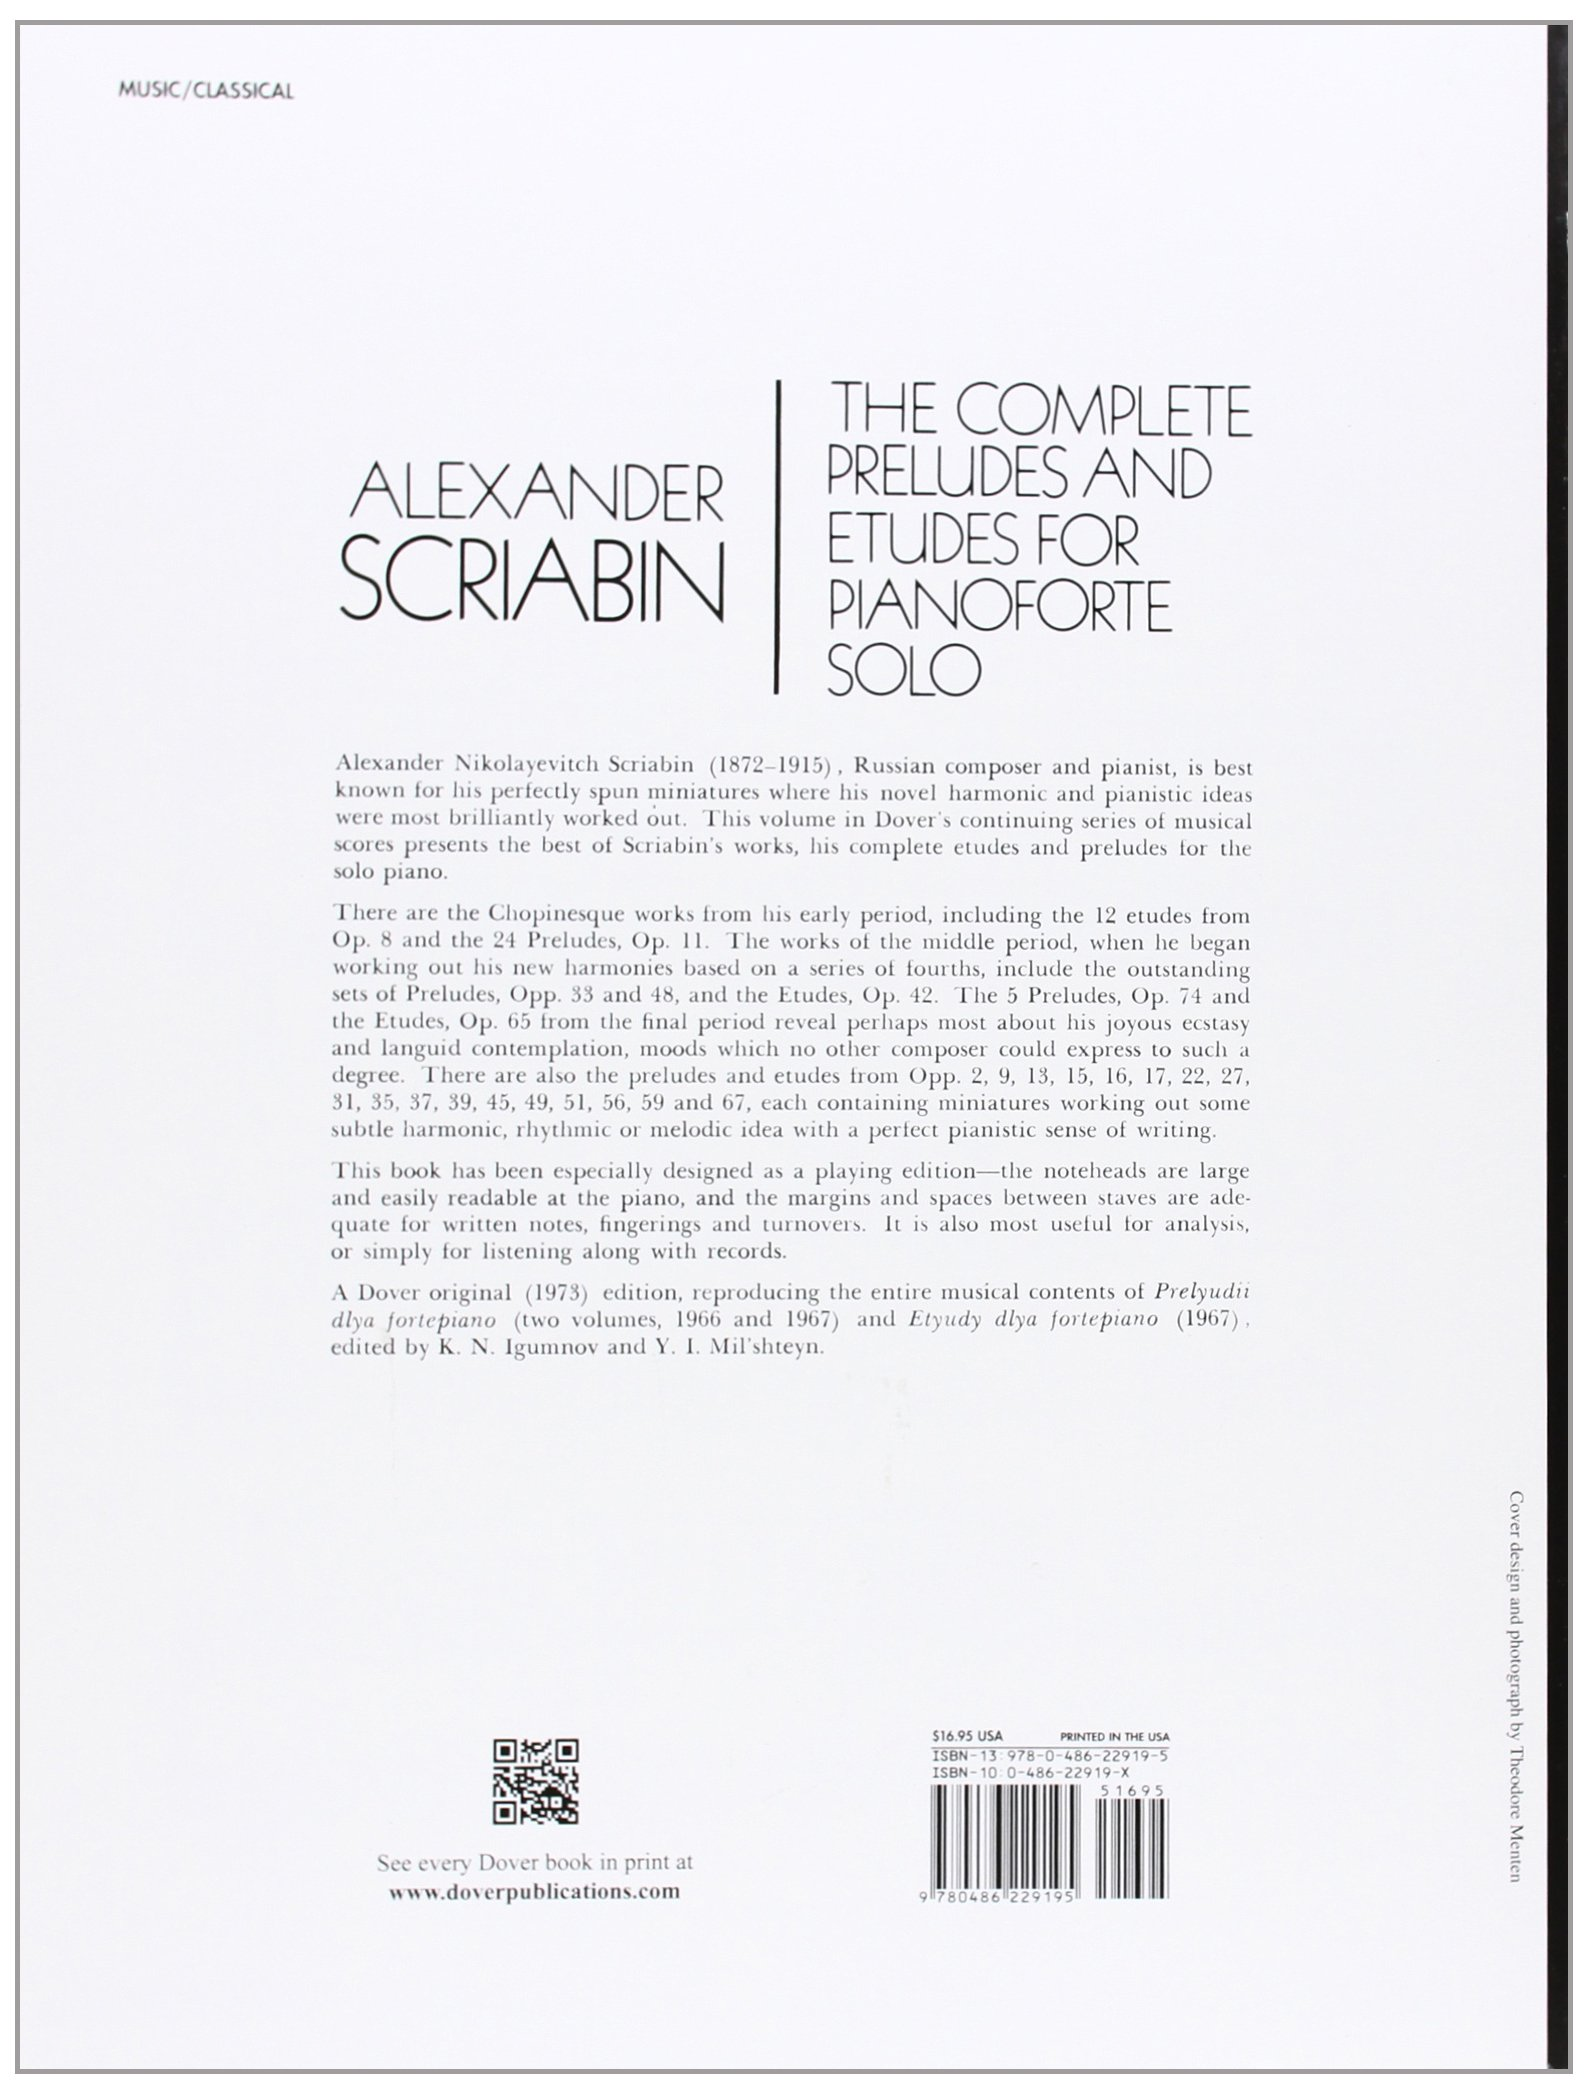 The Complete Preludes and Etudes for Pianoforte Solo (Dover Music for Piano):  Alexander Scriabin: 9780486229195: Amazon.com: Books